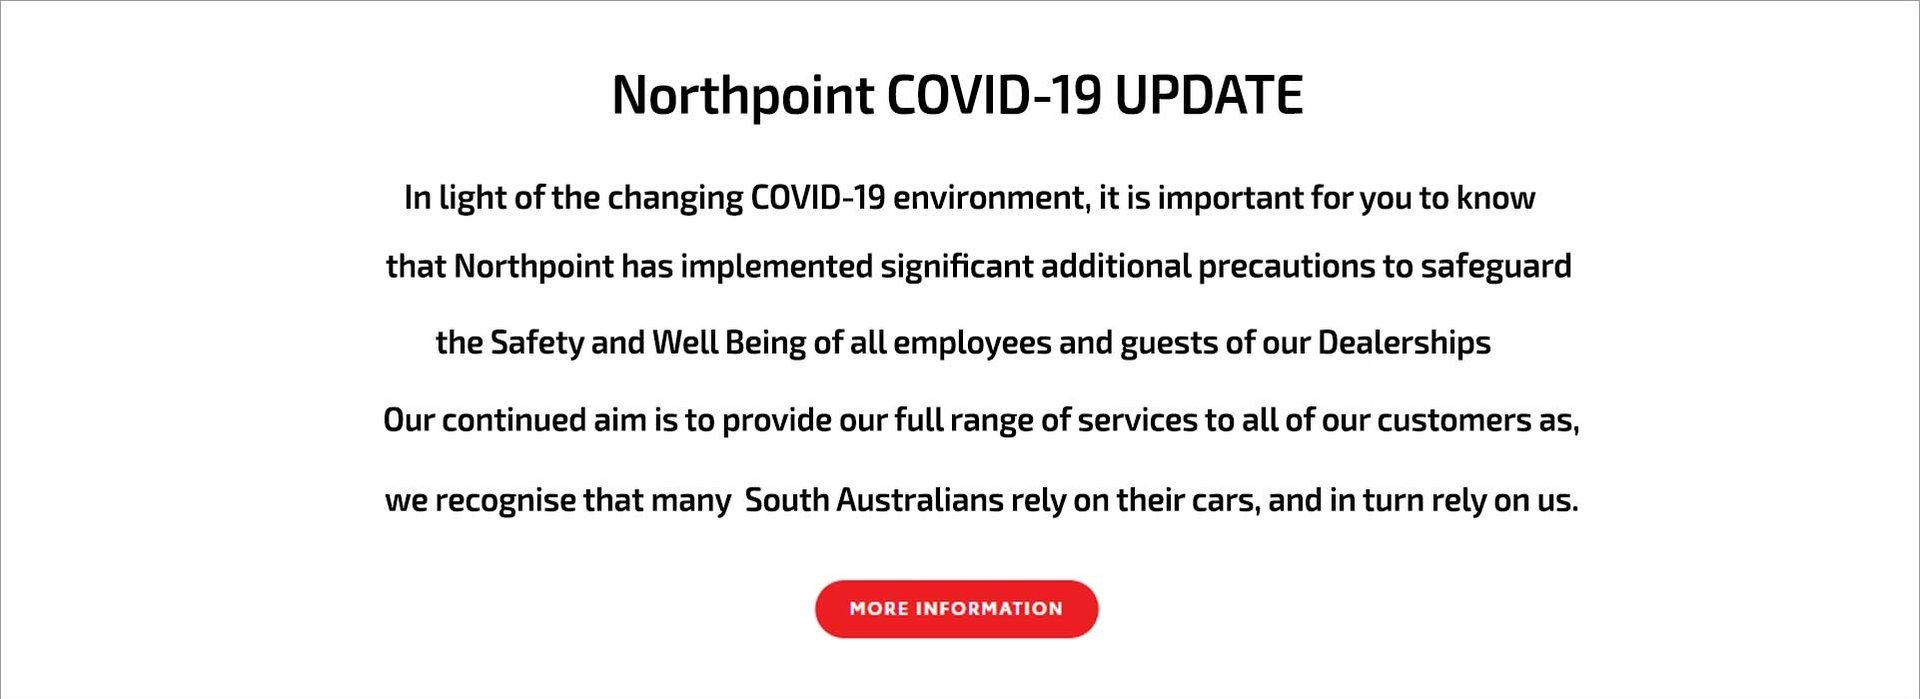 Northpoint COVID-19 UPDATE